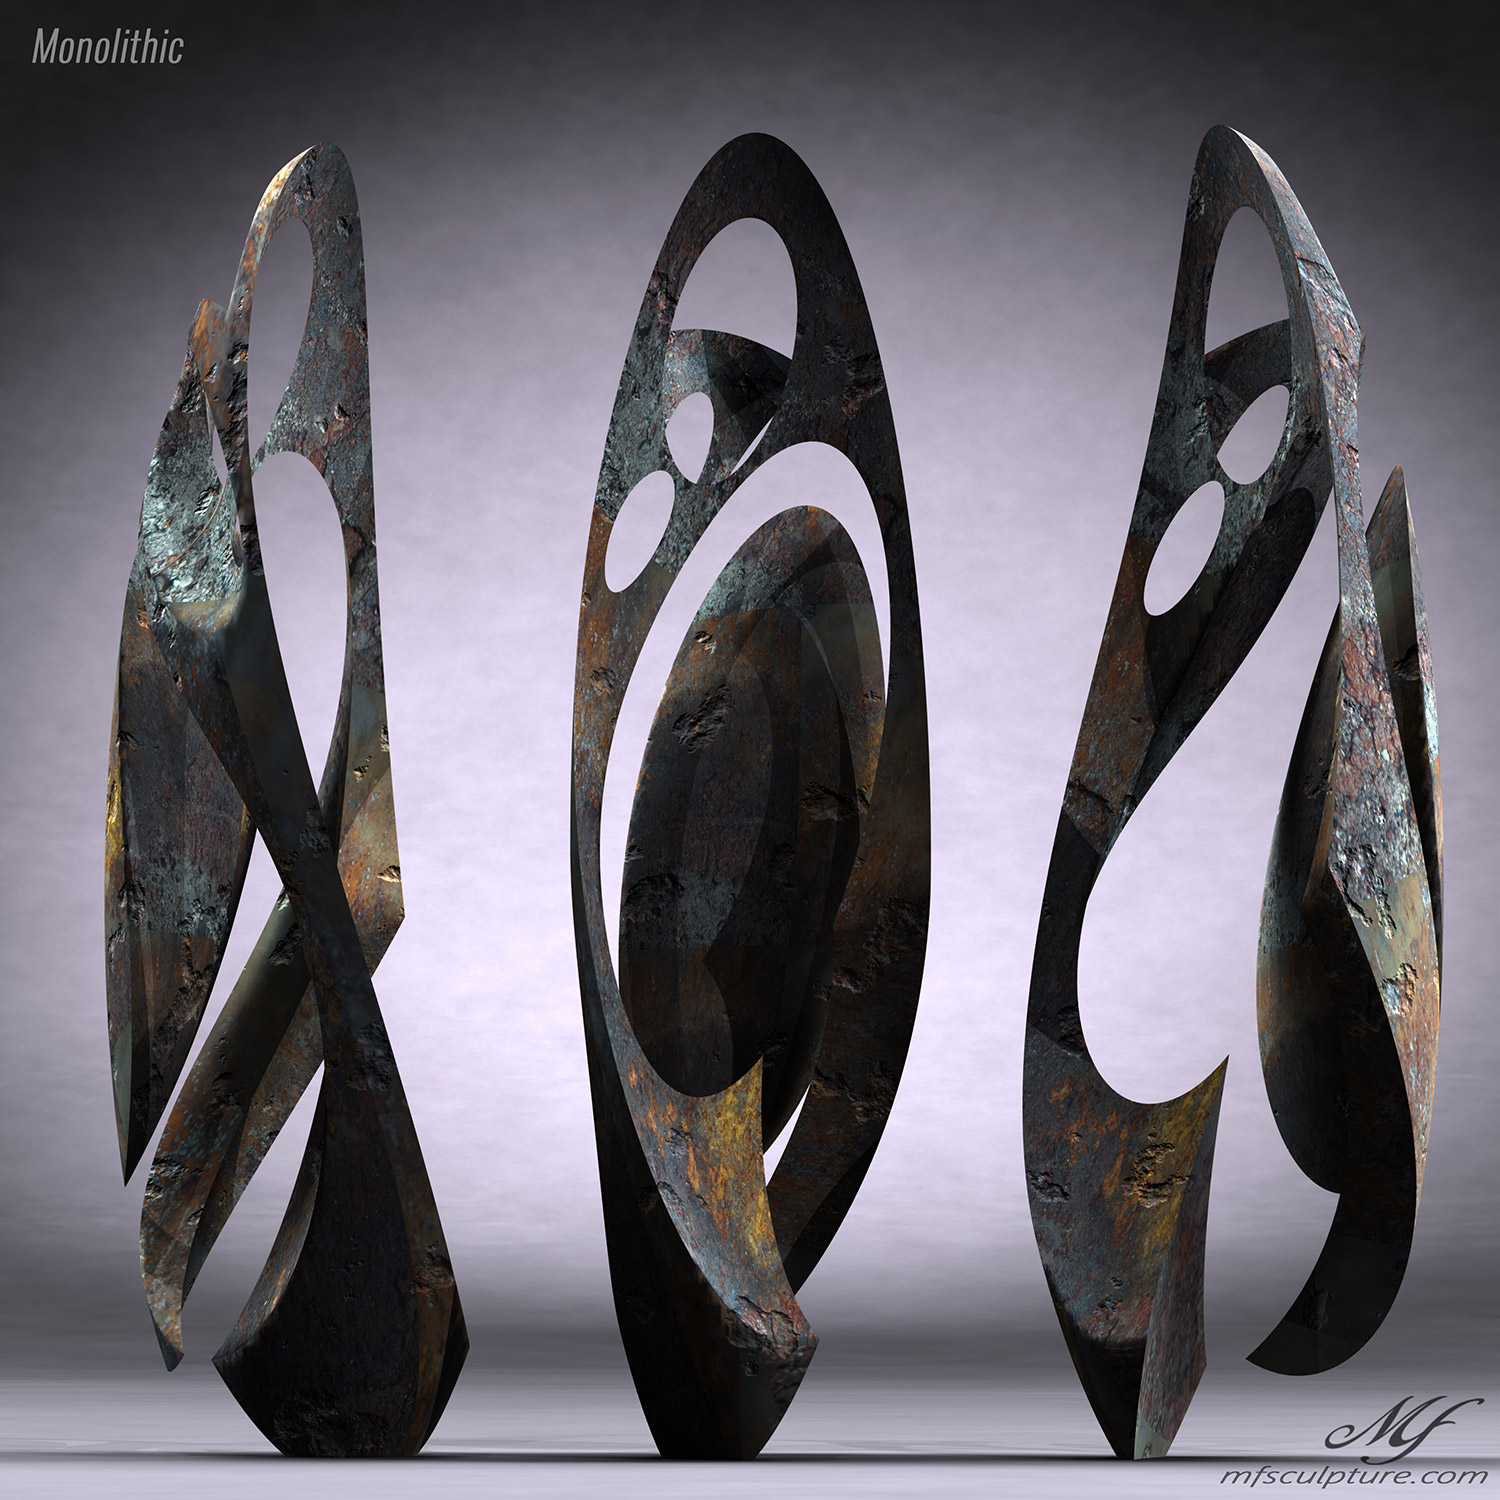 Monolithic Abstract Contemporary Sculpture Mike Fields 6